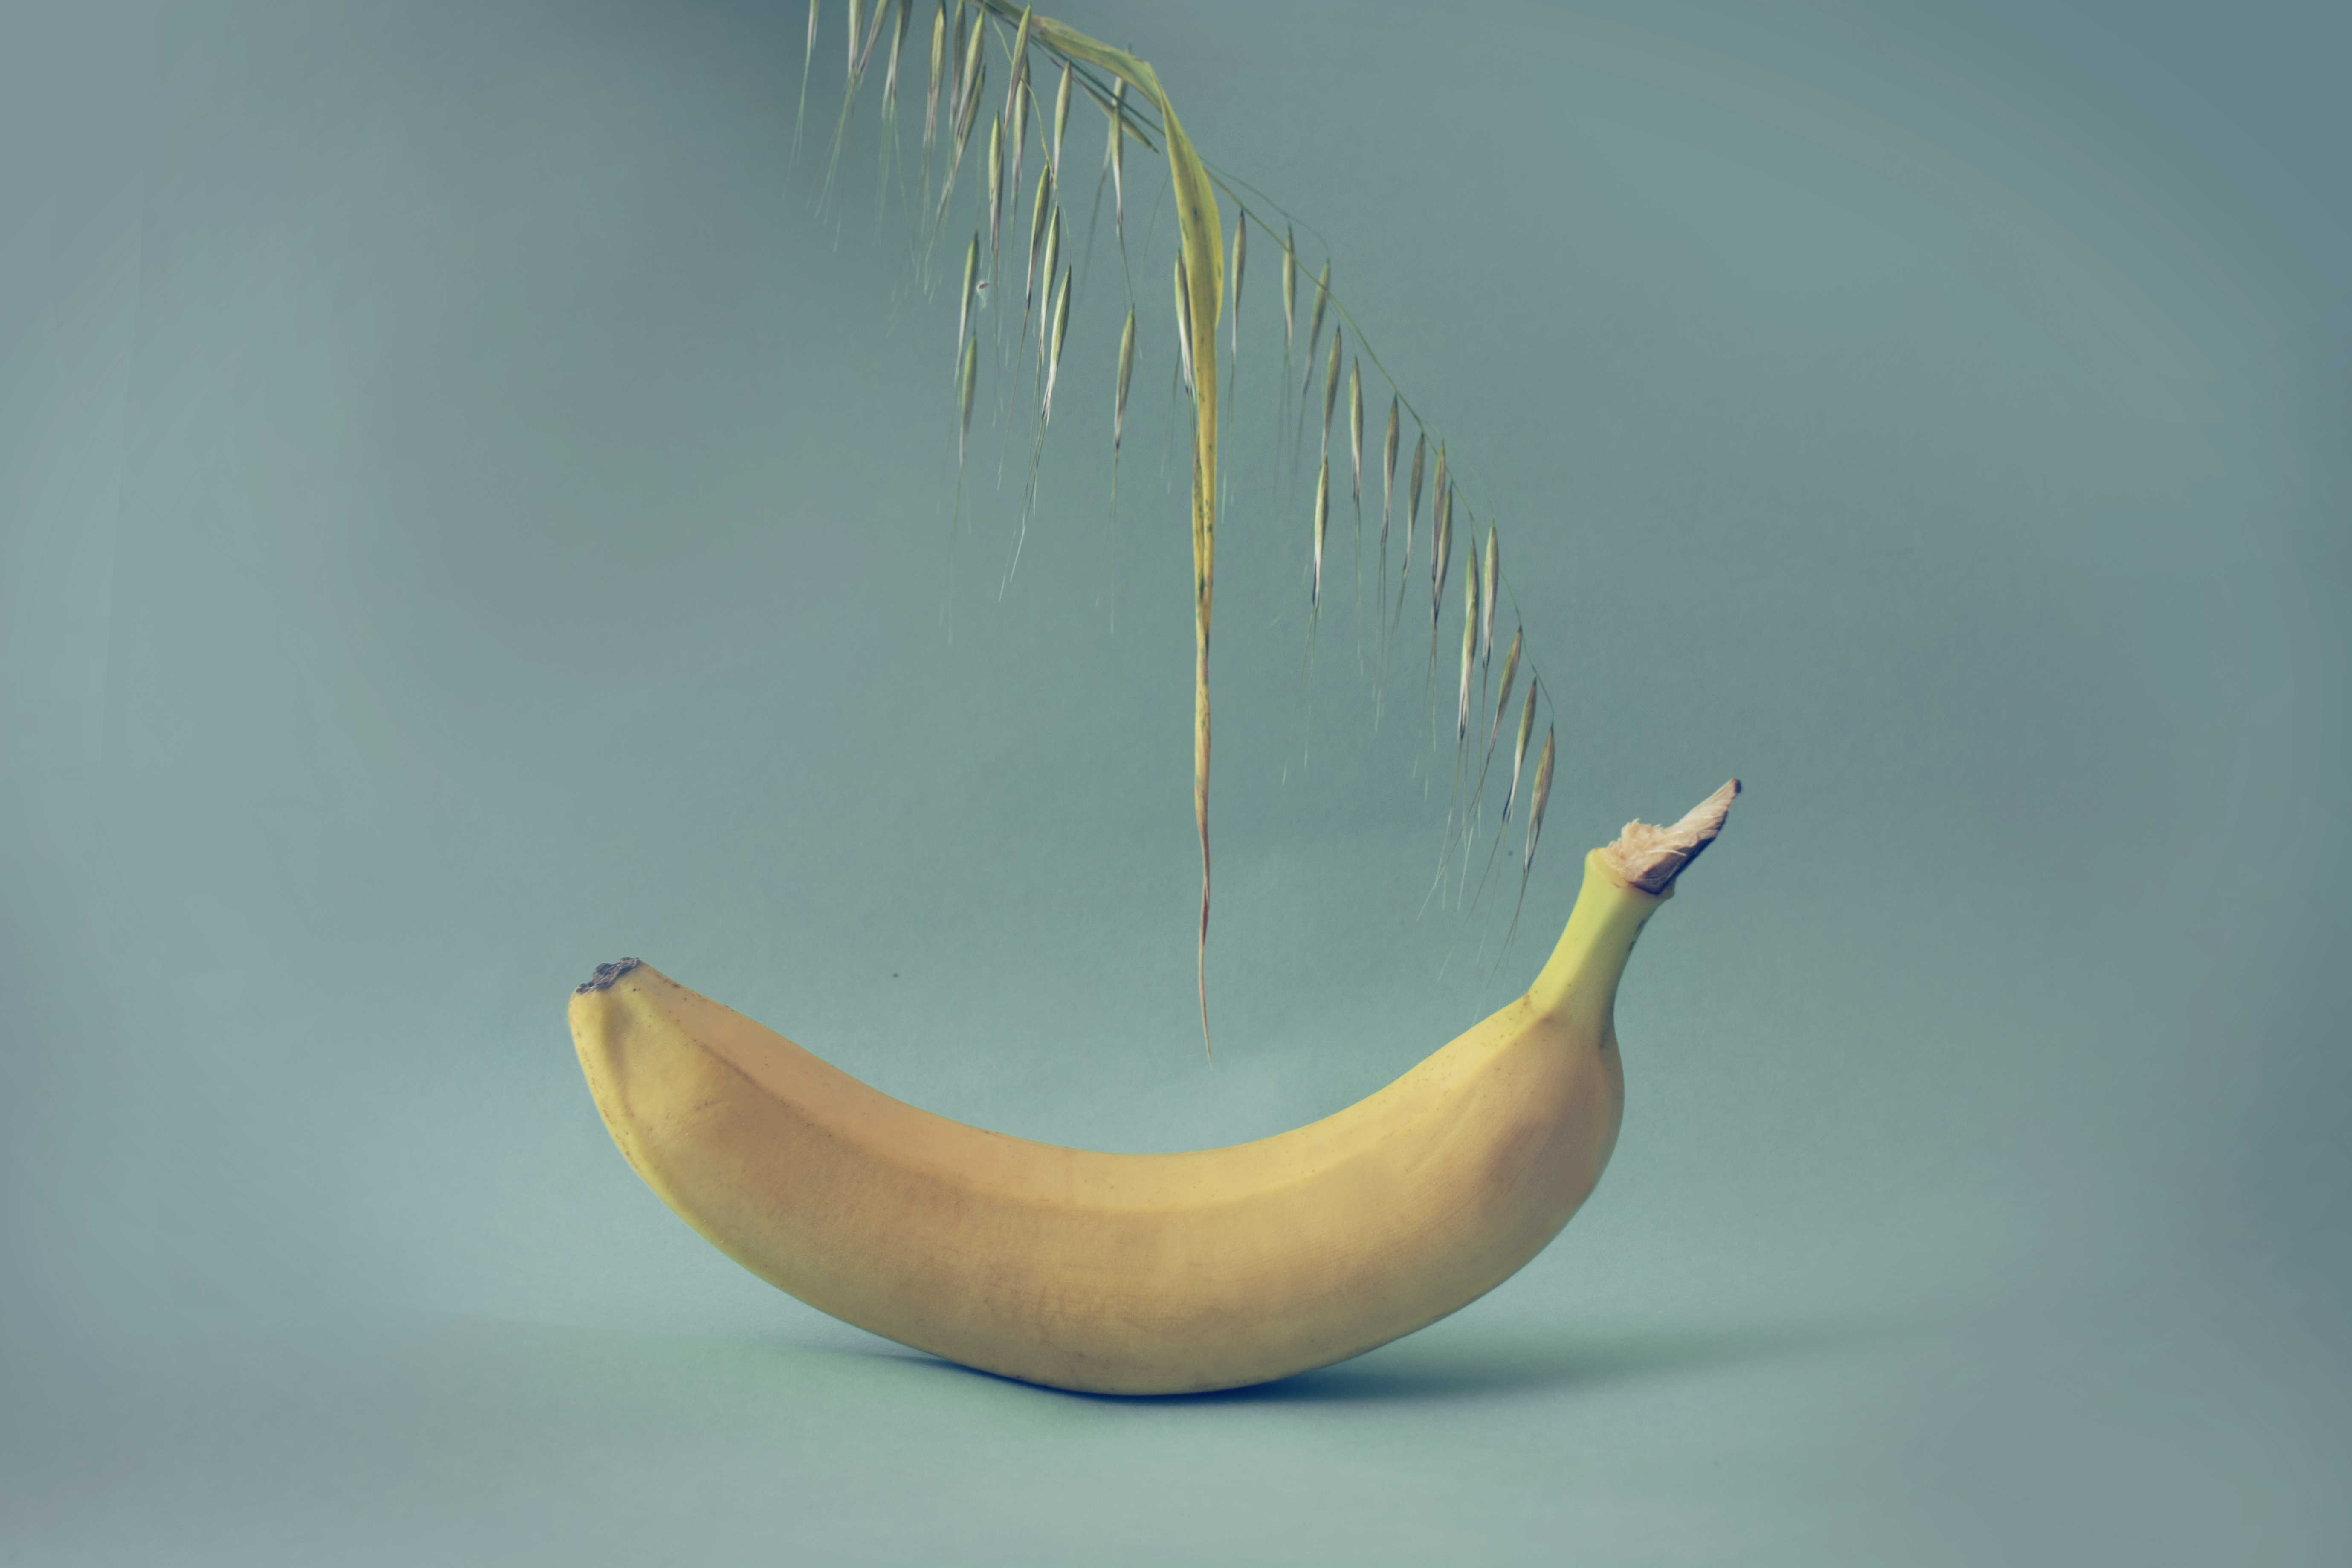 Wheat Banana